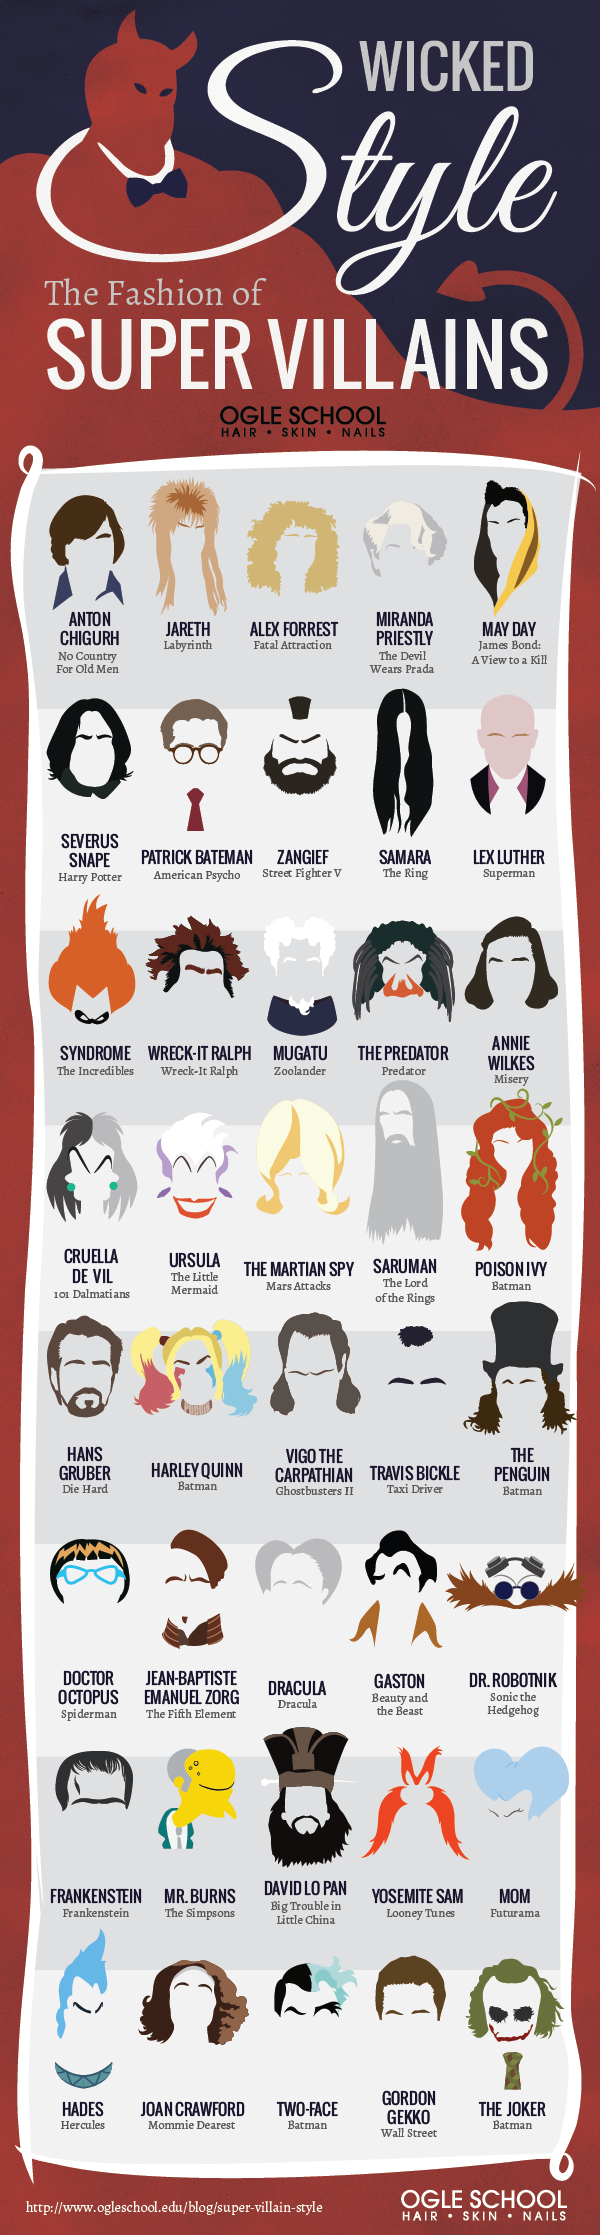 OGL-Wicked-Style-The-Fashion-of-Super-Villains-infographic-plaza